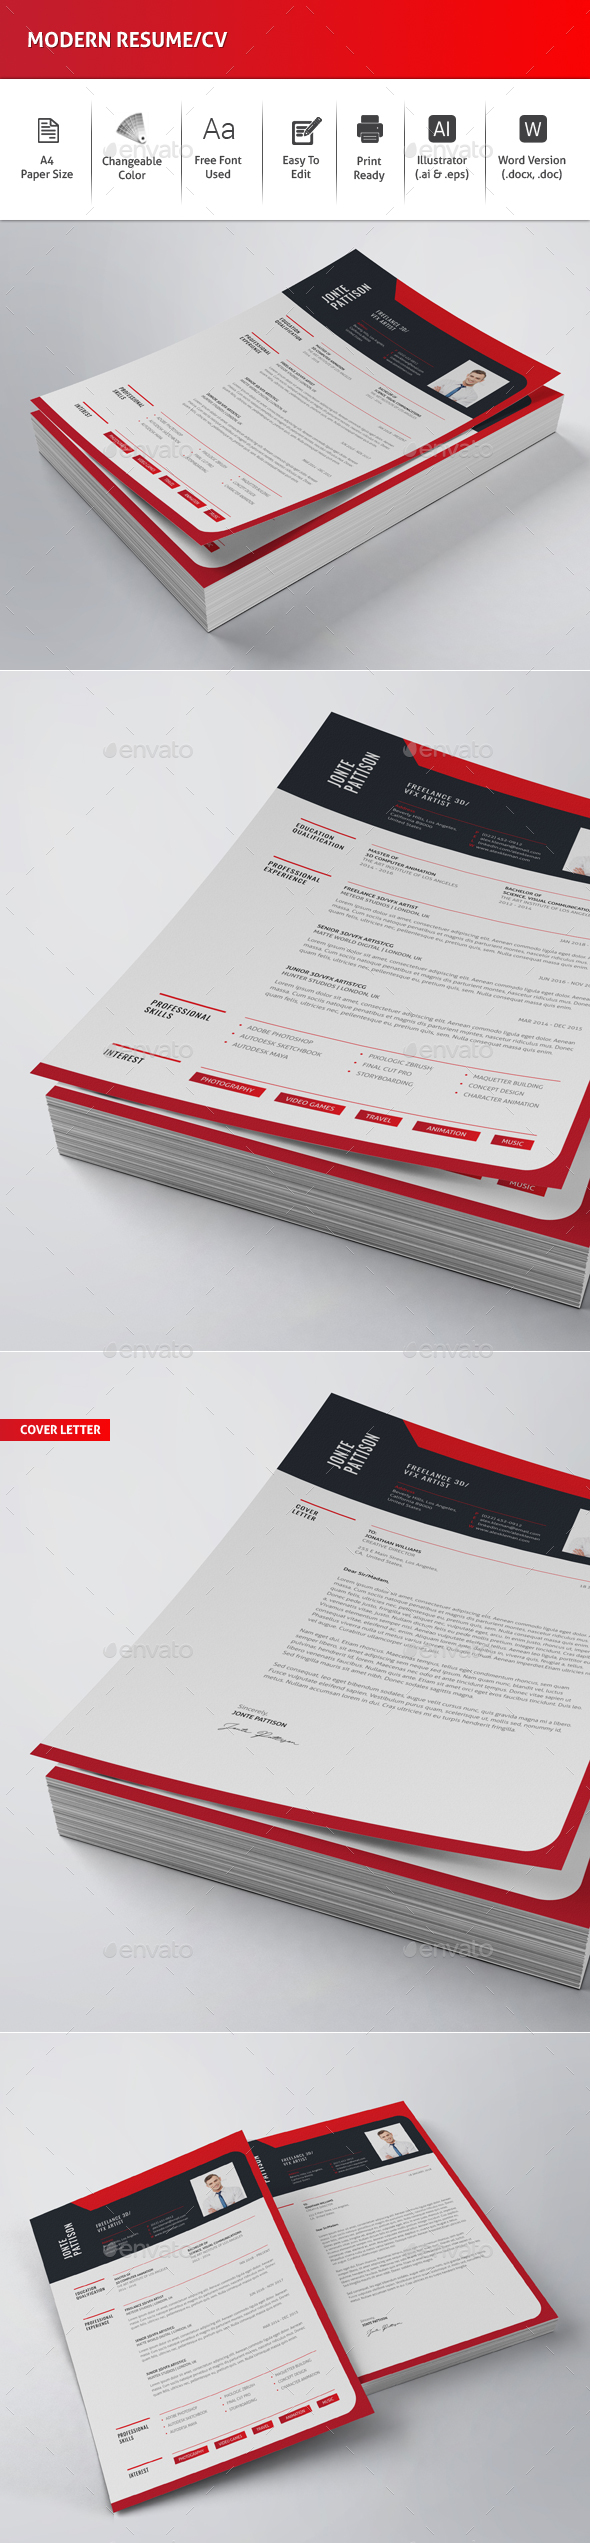 Modern Resume/CV - Resumes Stationery